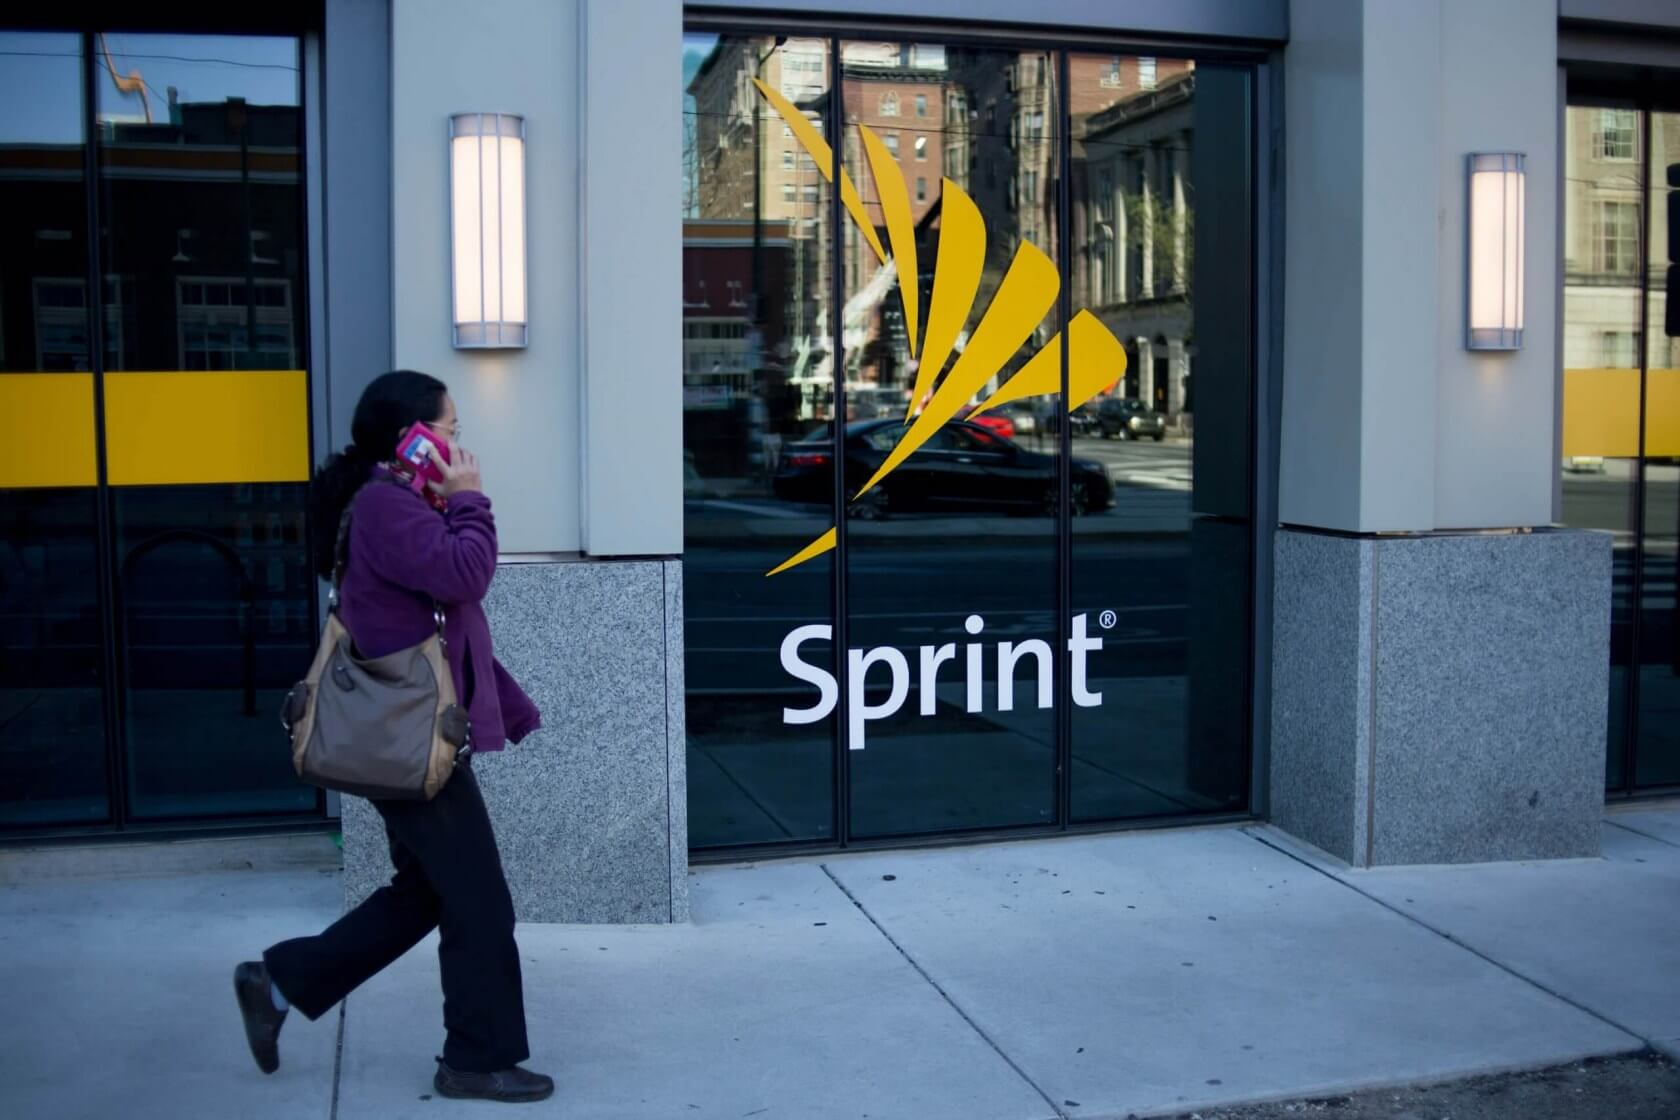 Sprint will fix your Samsung Galaxy's cracked screen for $49 - TechSpot